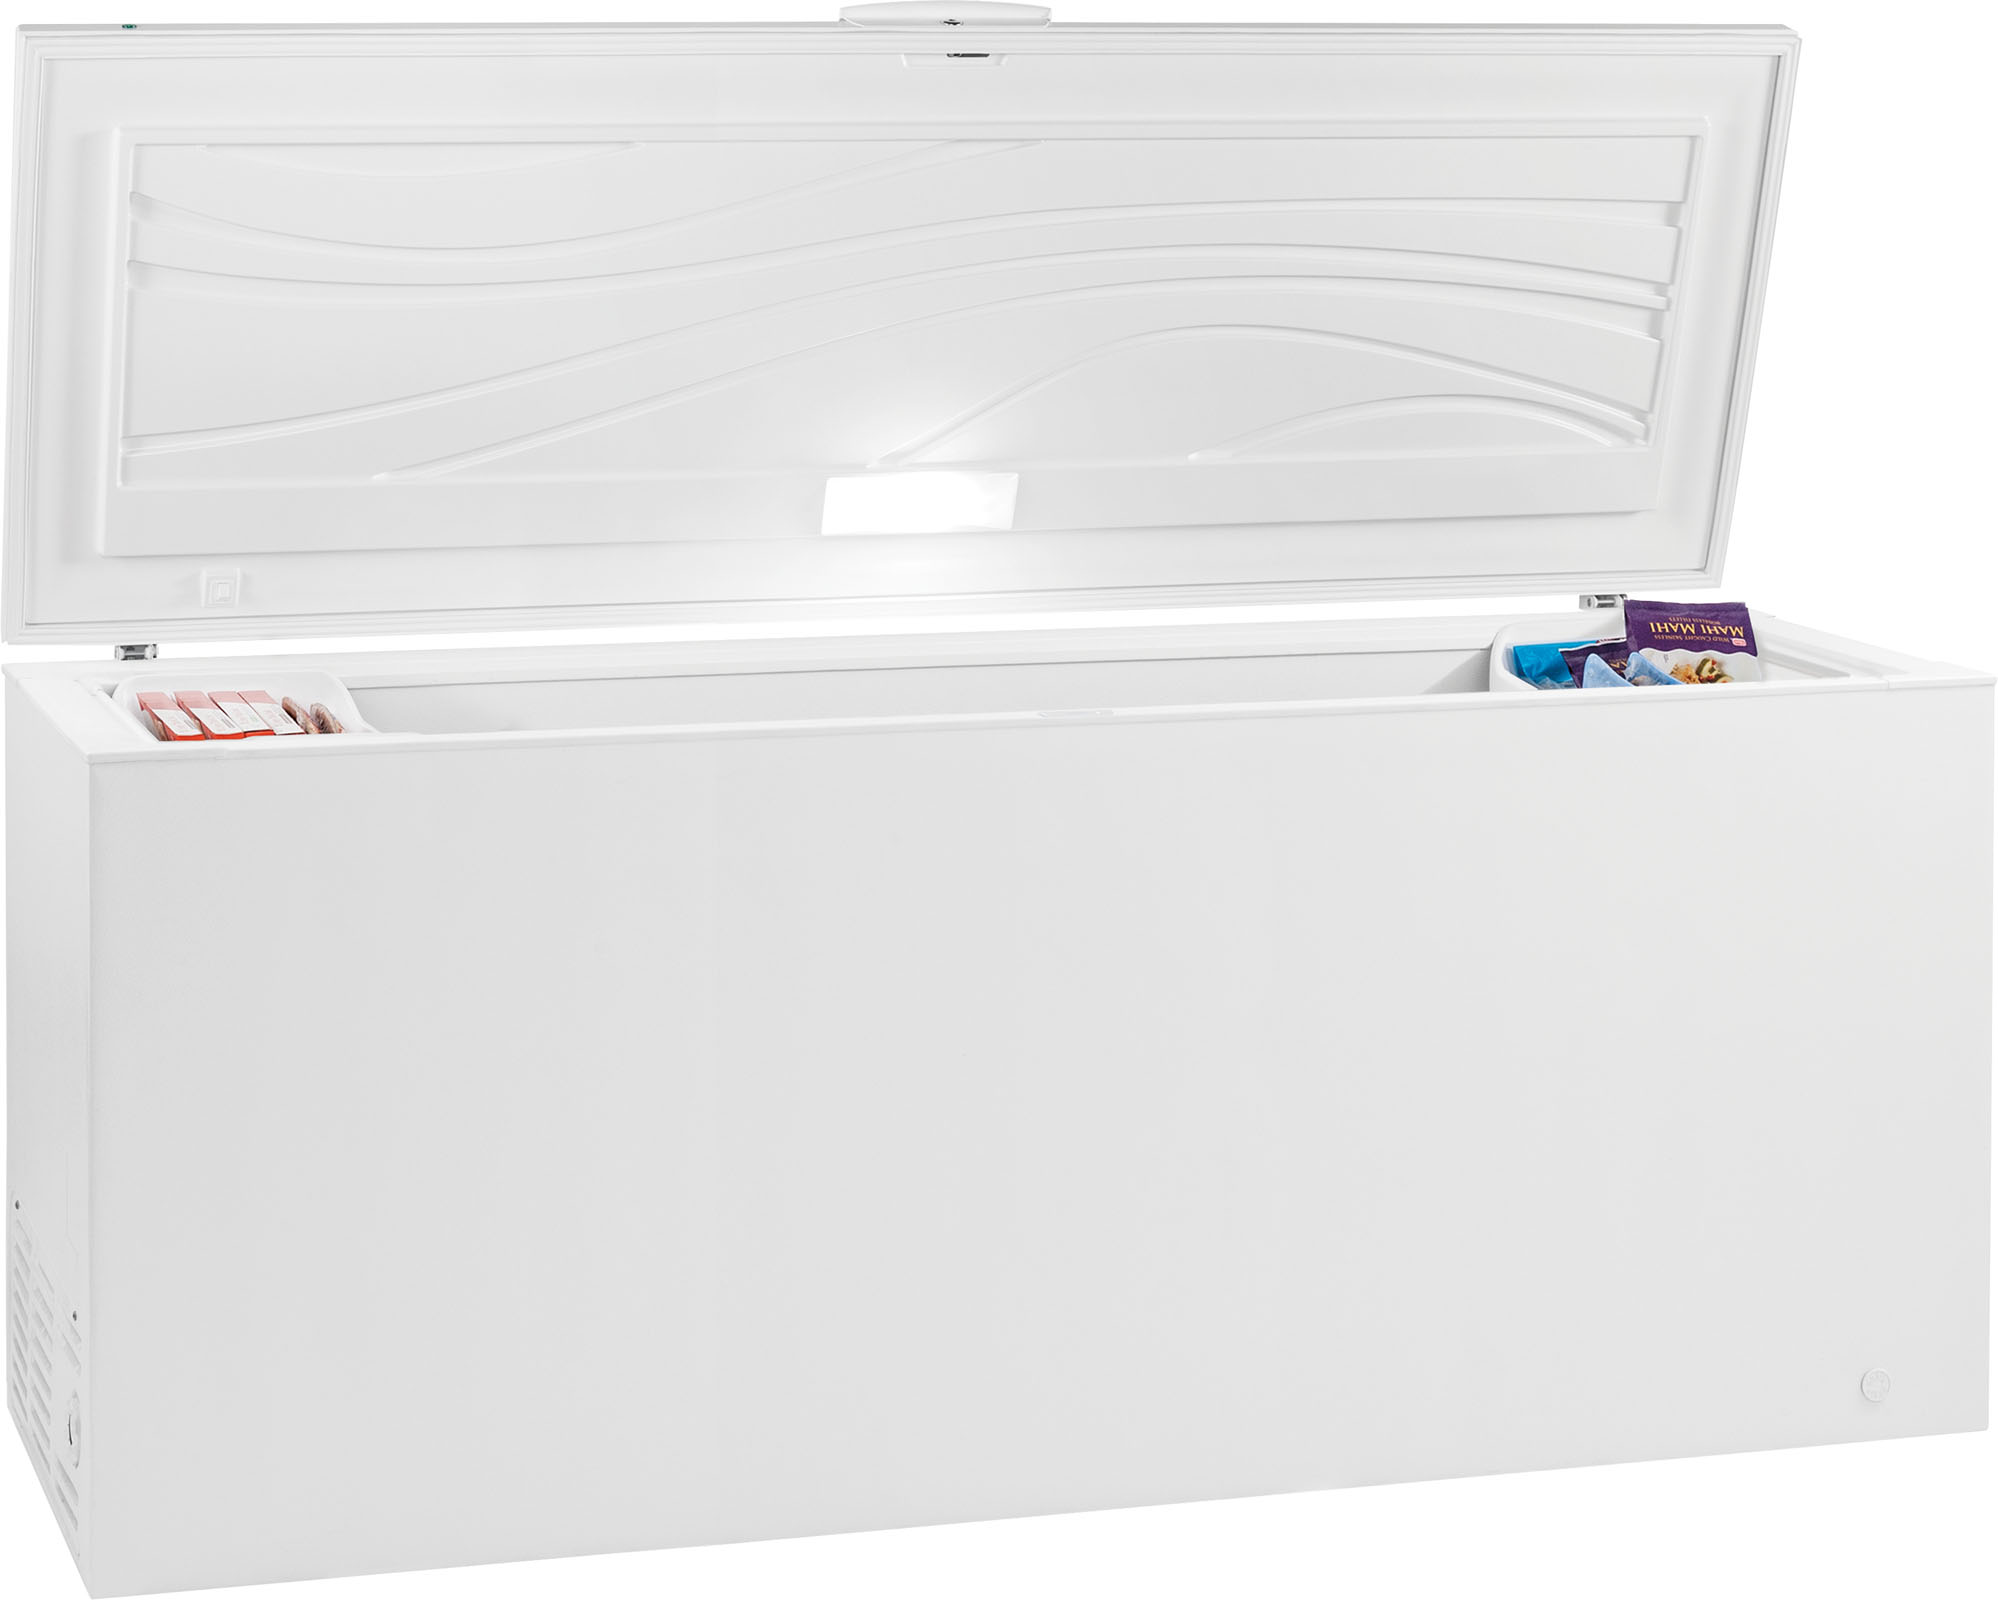 Kenmore 12822 22 cu. ft. Chest Freezer - White